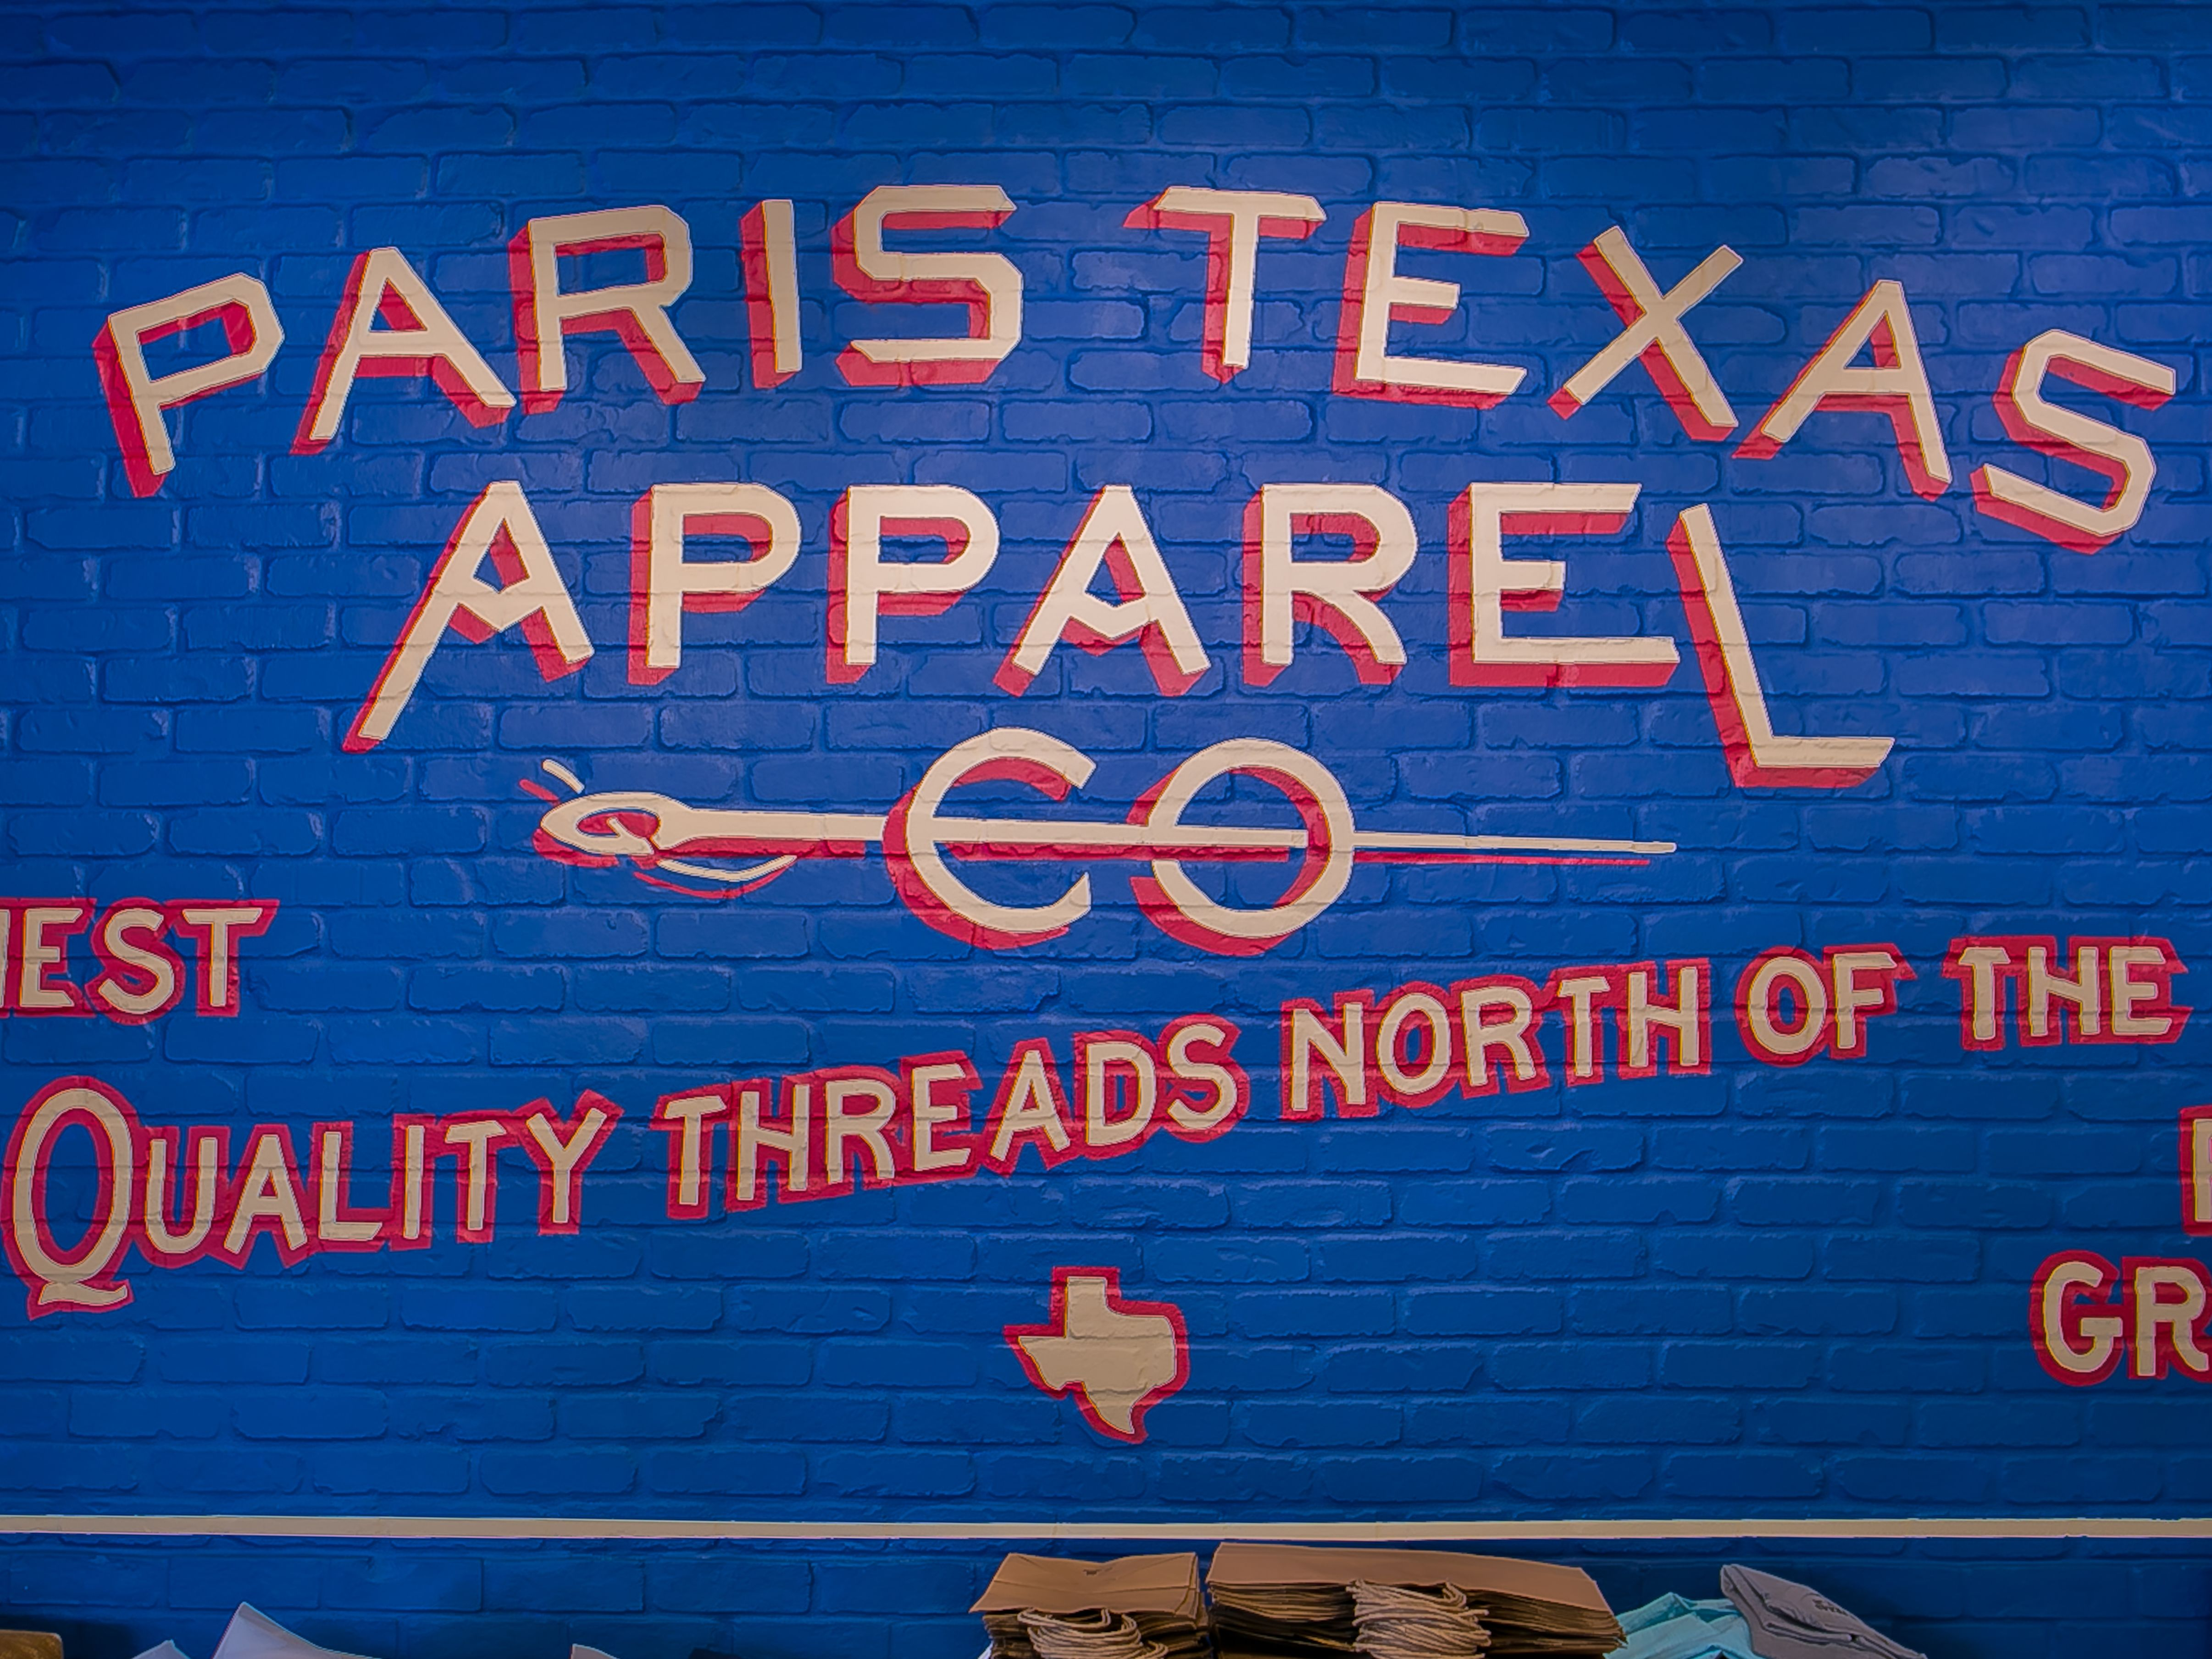 Paris texas apparel co. grand opening photo by morris malakoff  ckp  64  jaevd0